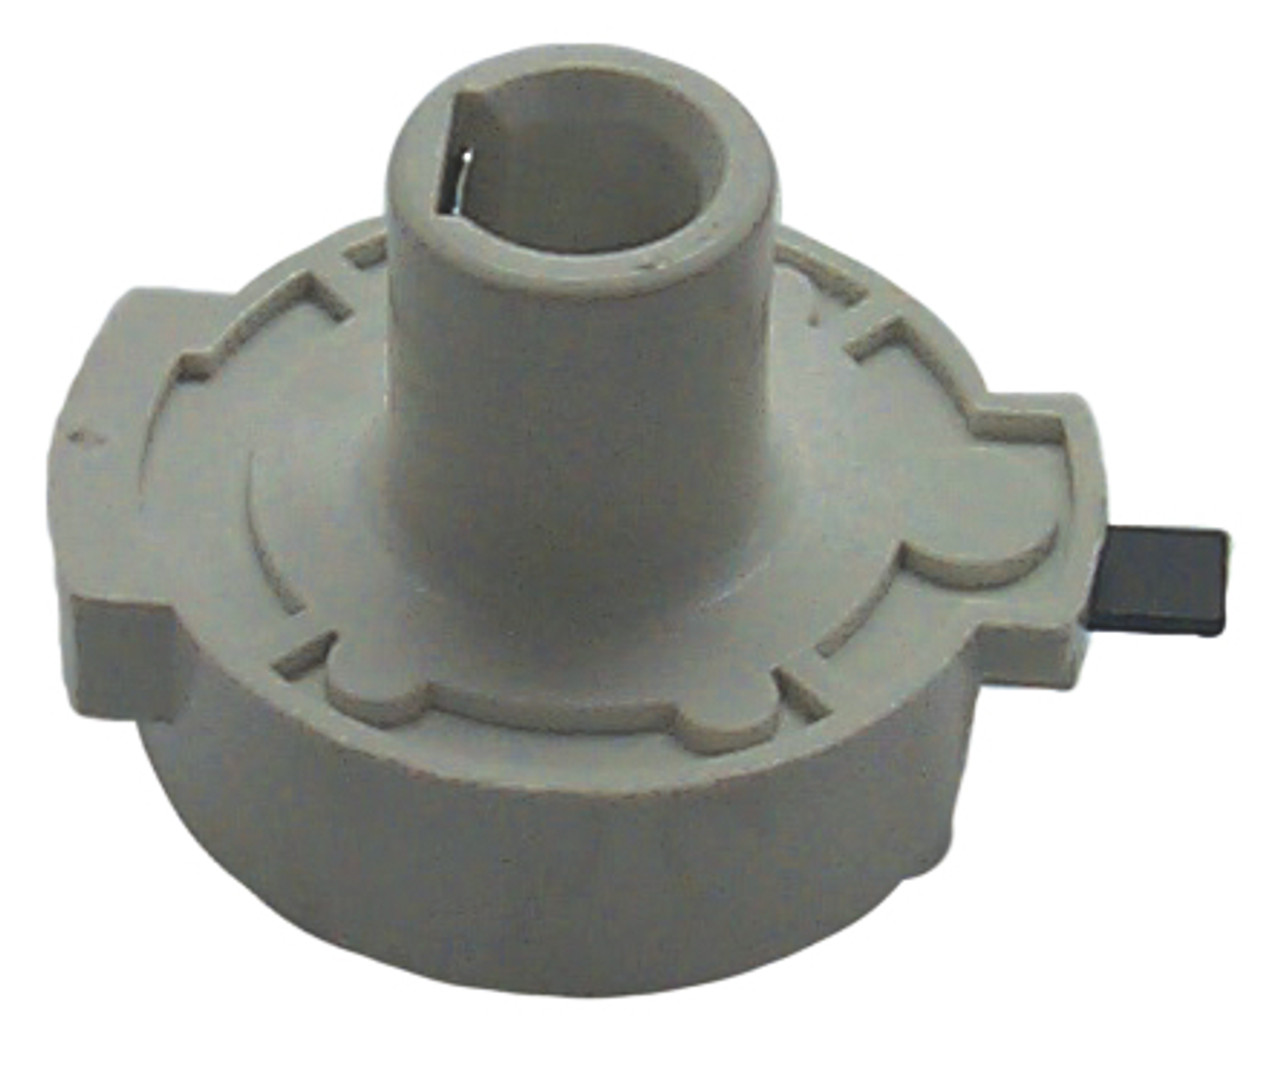 $8.23 **ROTOR - 3854311 ** IN STOCK & READY TO SHIP!